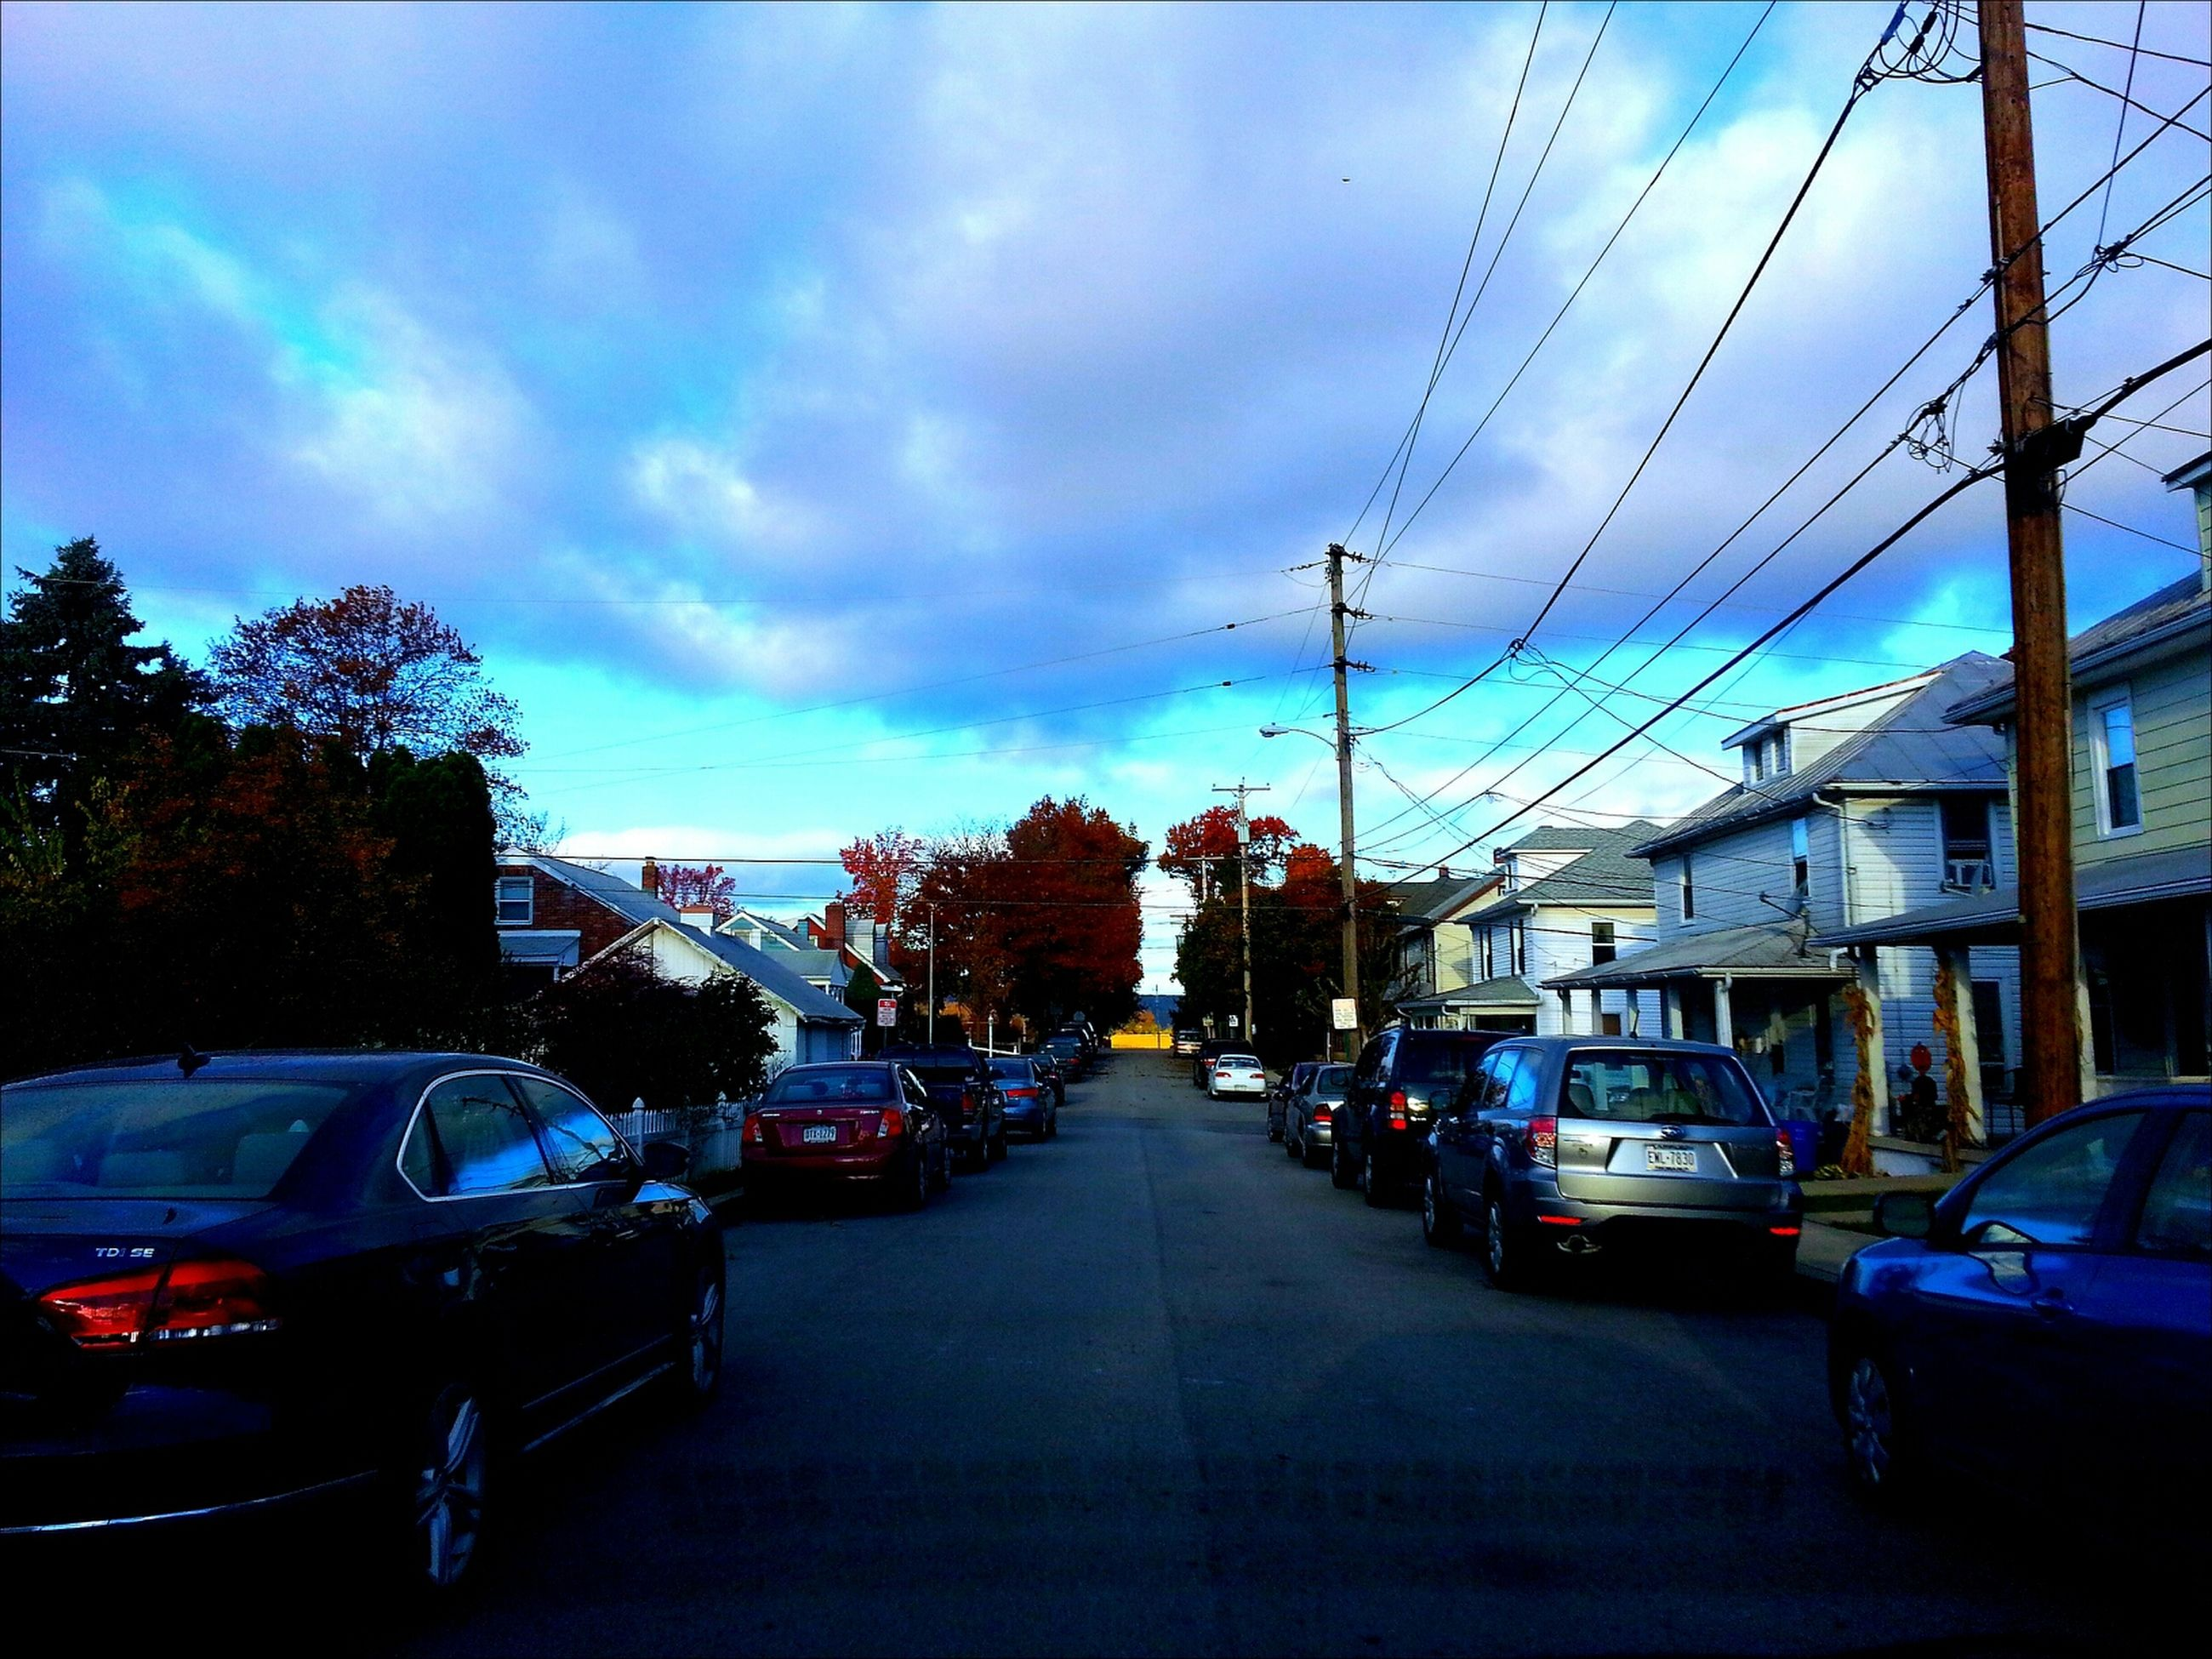 transportation, car, land vehicle, building exterior, mode of transport, architecture, street, built structure, sky, the way forward, city, road, diminishing perspective, parking, tree, city street, stationary, cloud - sky, bare tree, parked